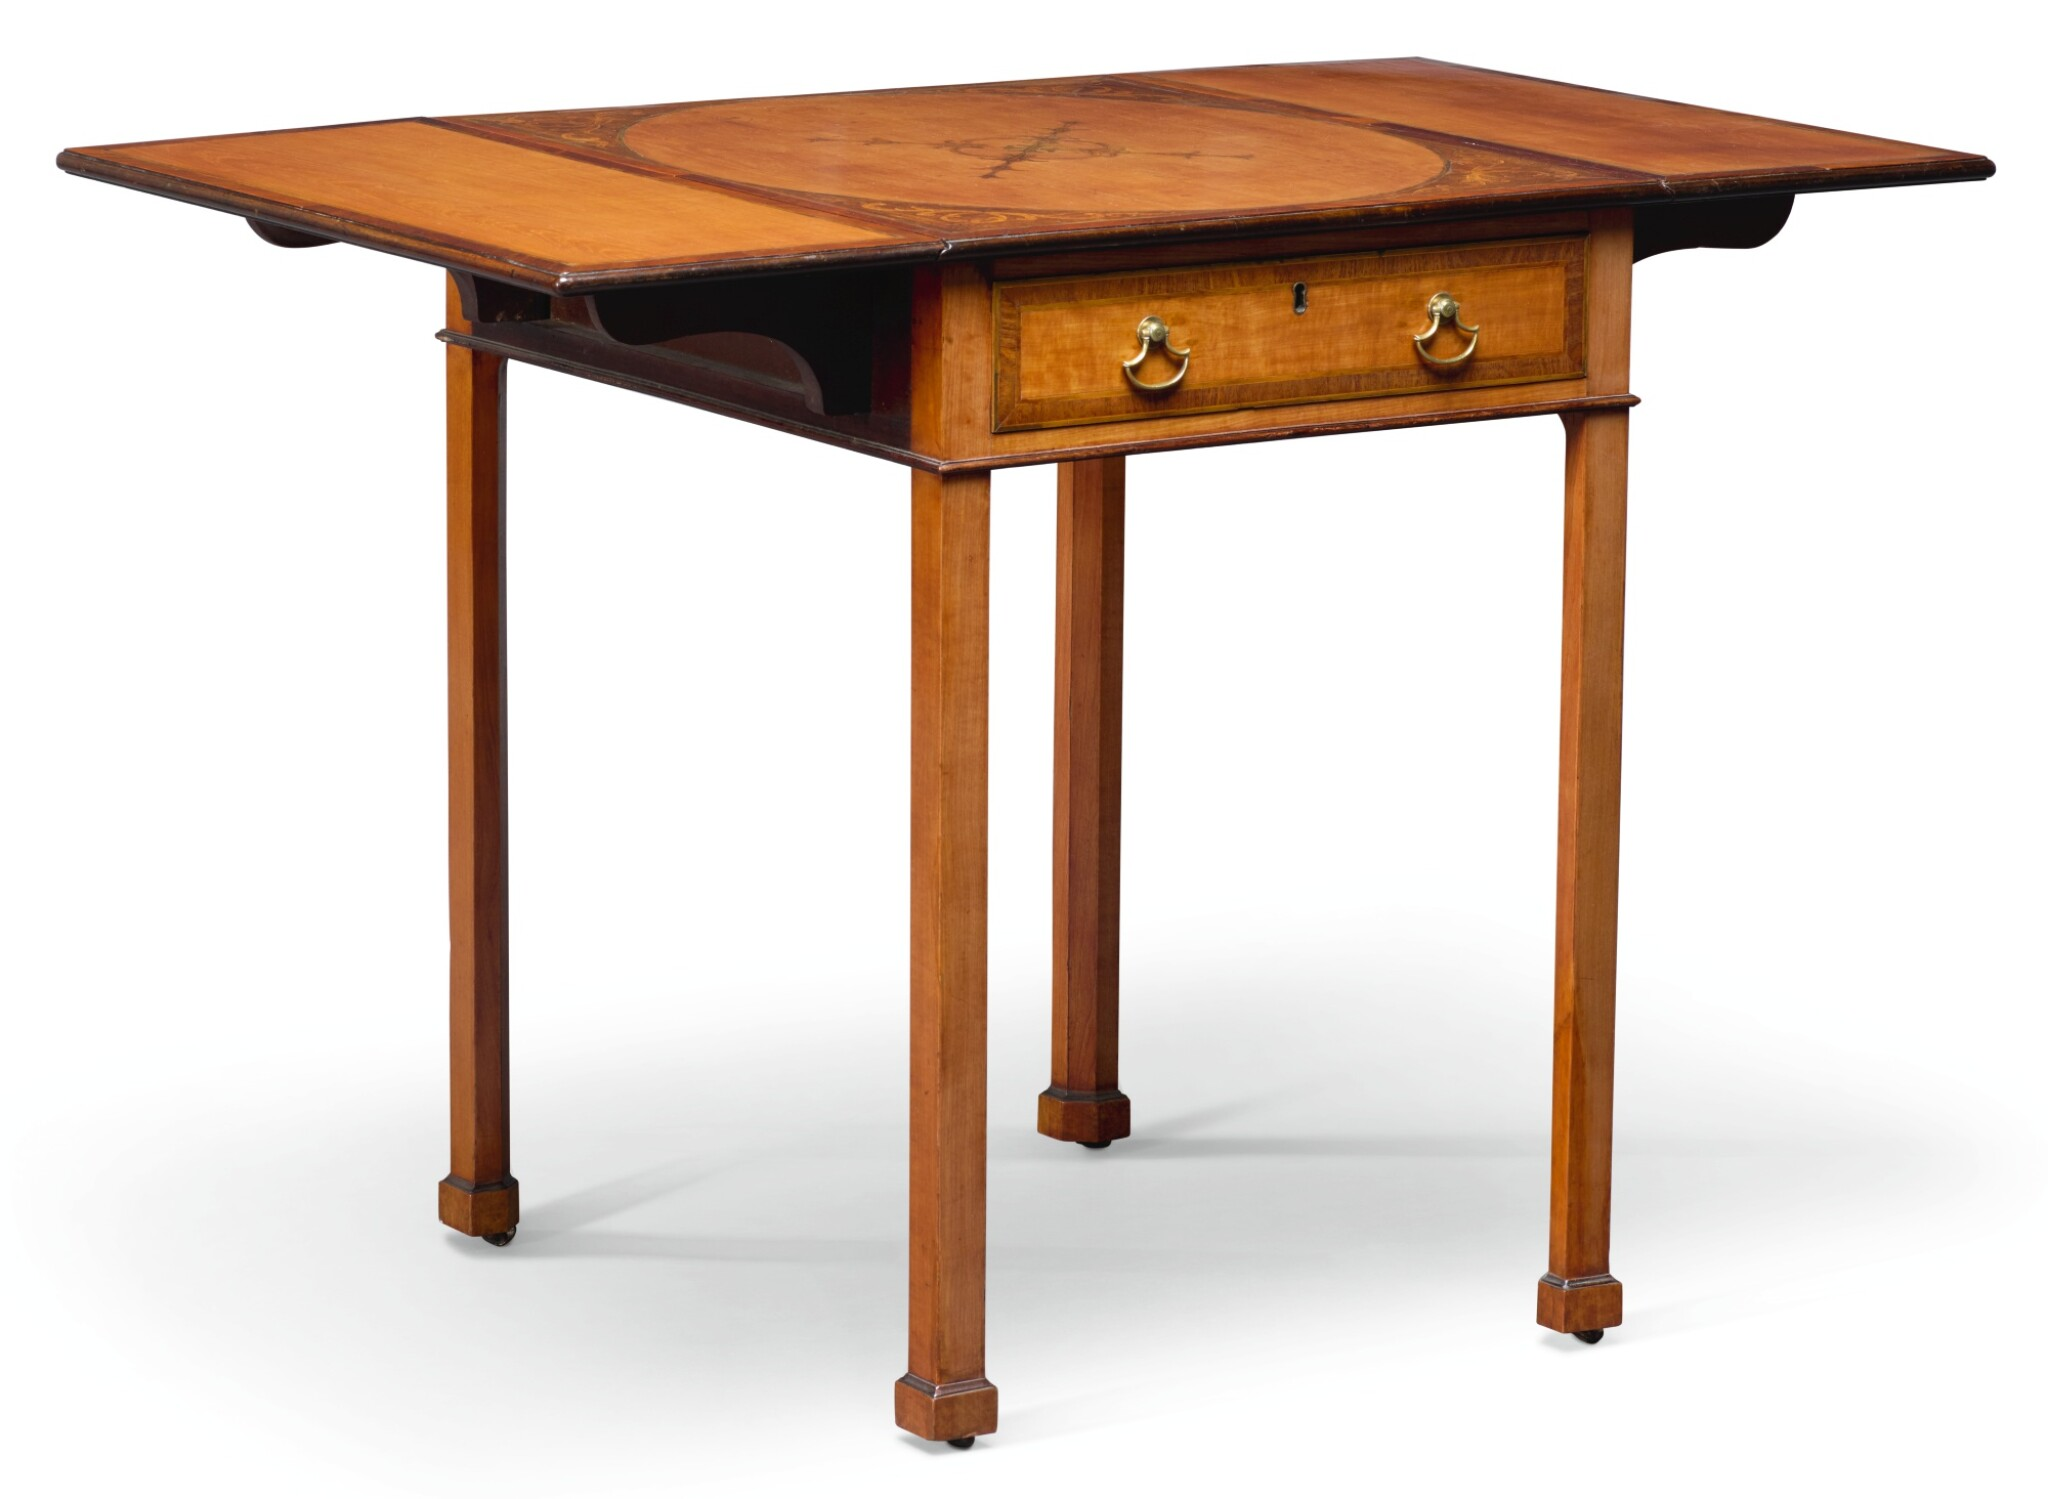 View 1 of Lot 107.  A GEORGE III SATINWOOD AND MARQUETRY PEMBROKE TABLE, LATE 18TH CENTURY.